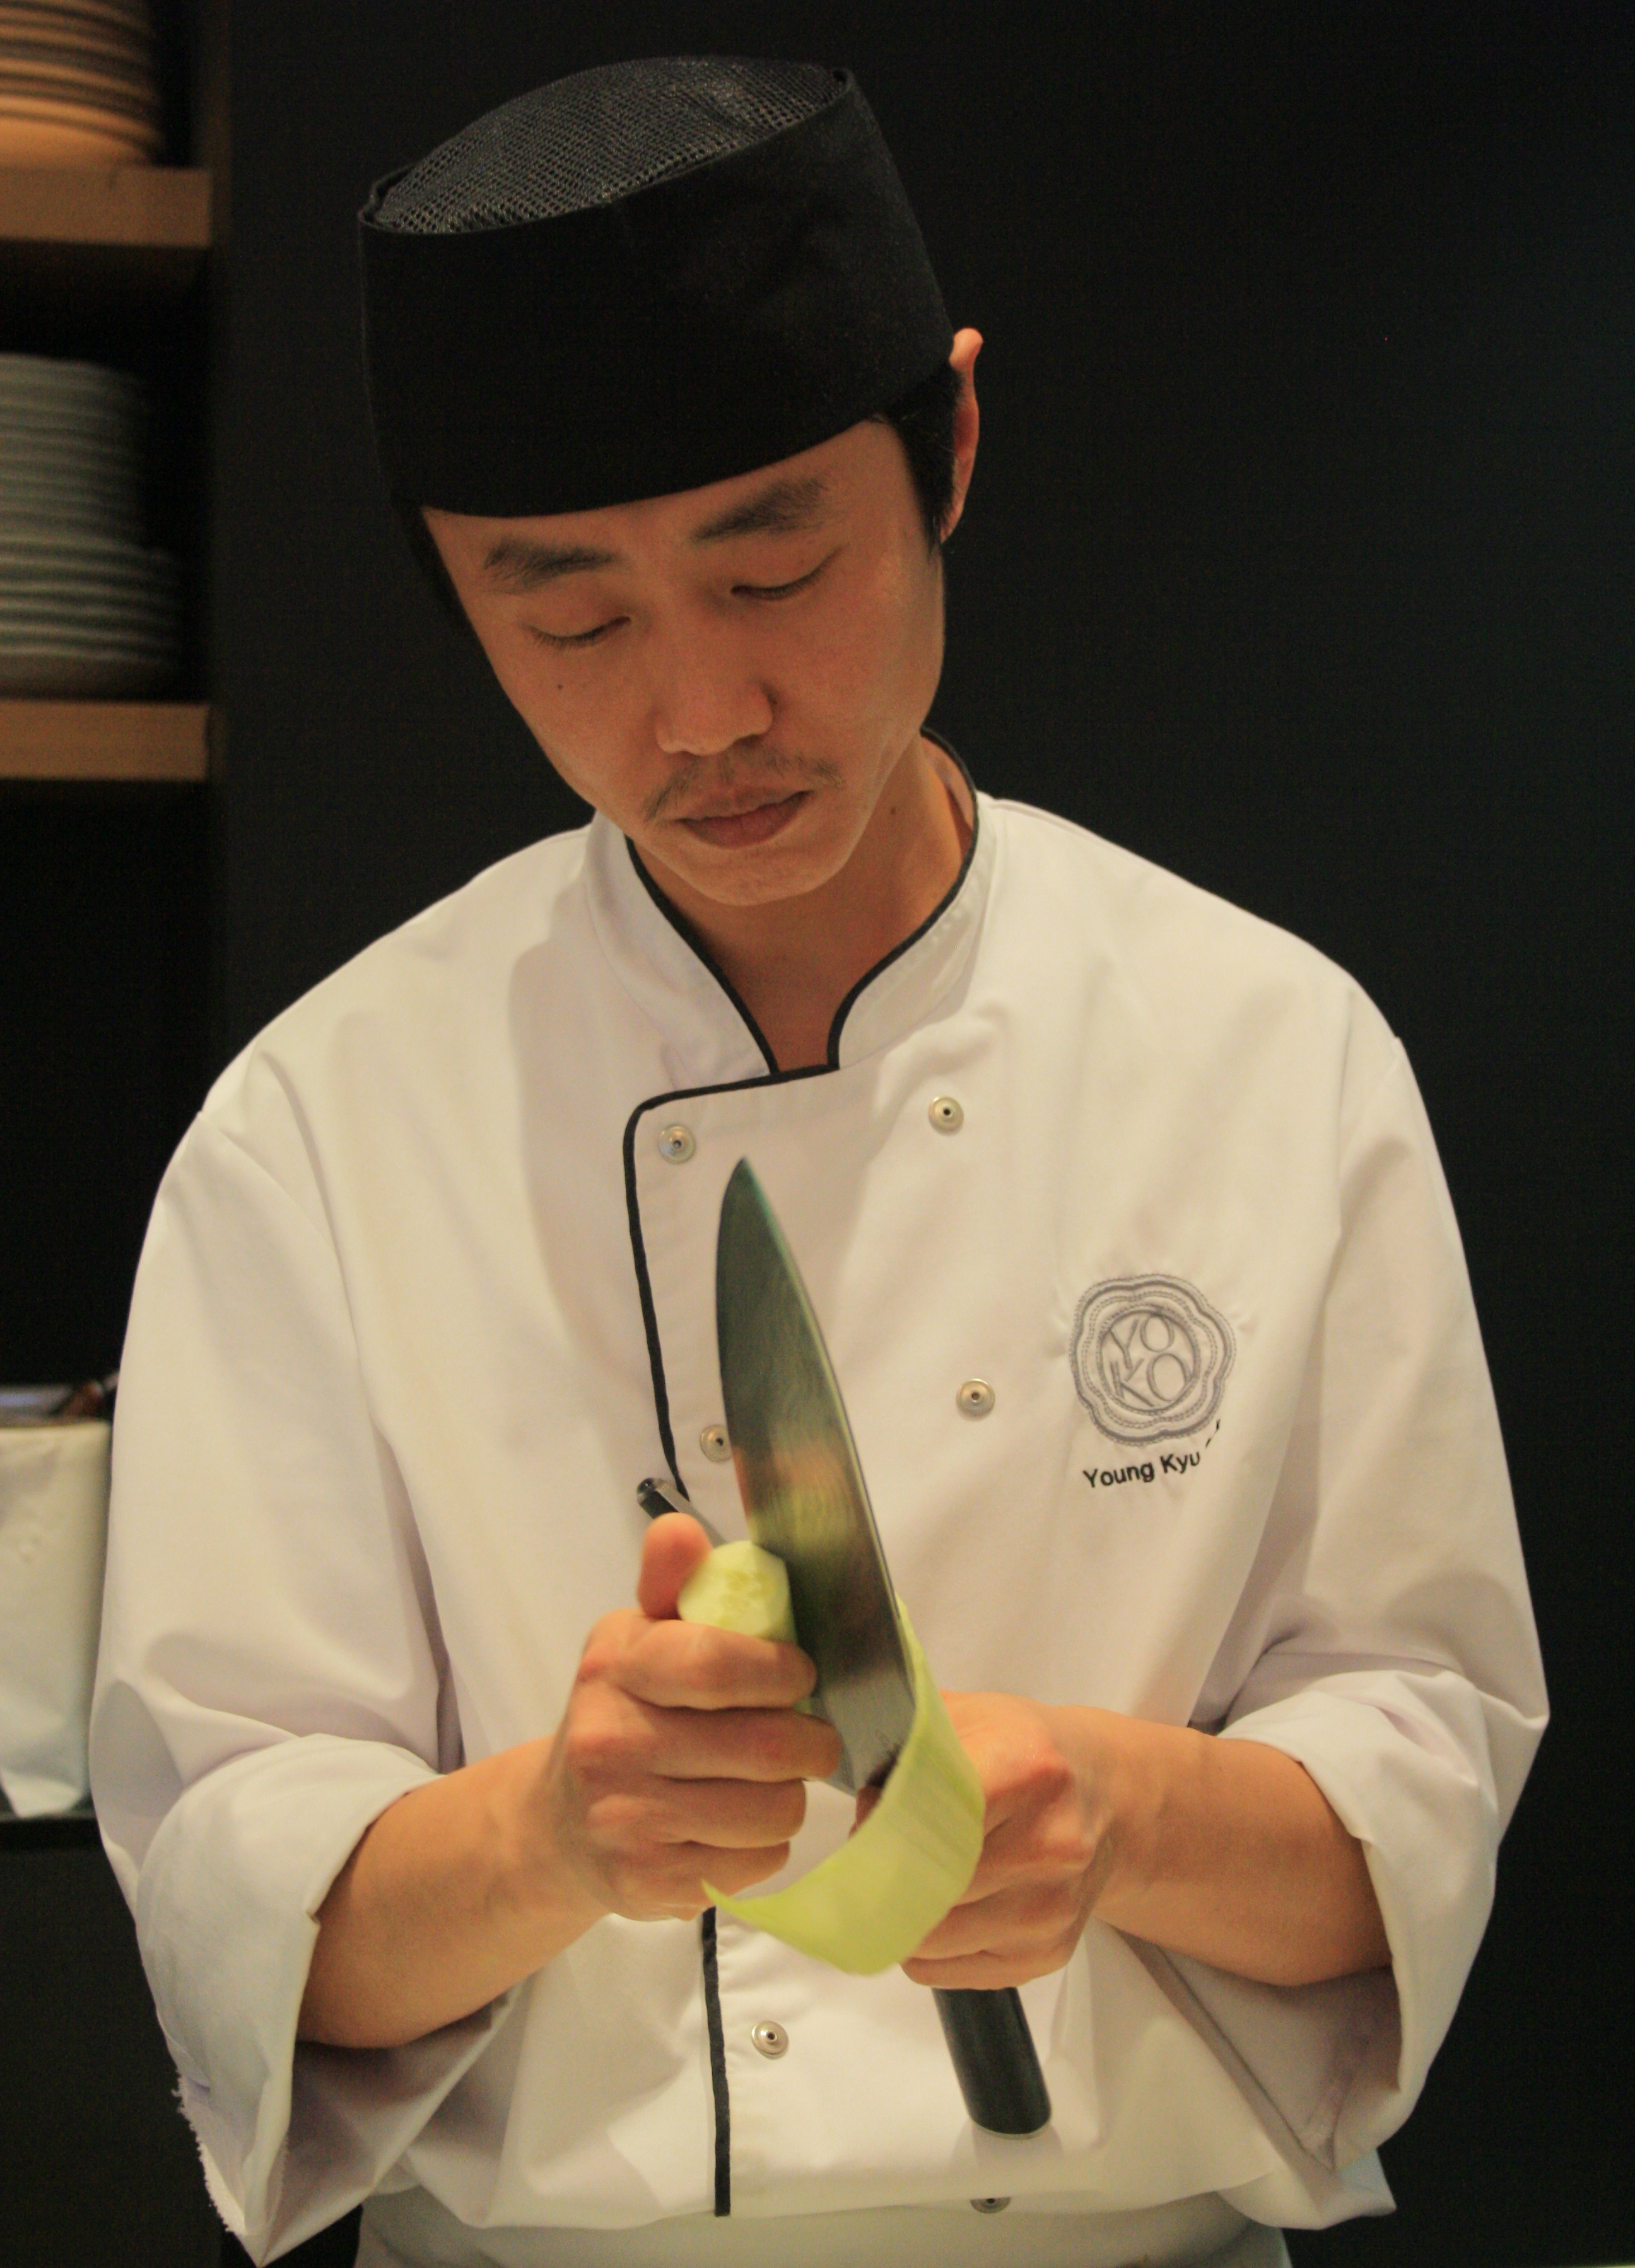 http://static1.terrafemina.com/tfcoimages/photos_articles/chef%20yoko.jpg